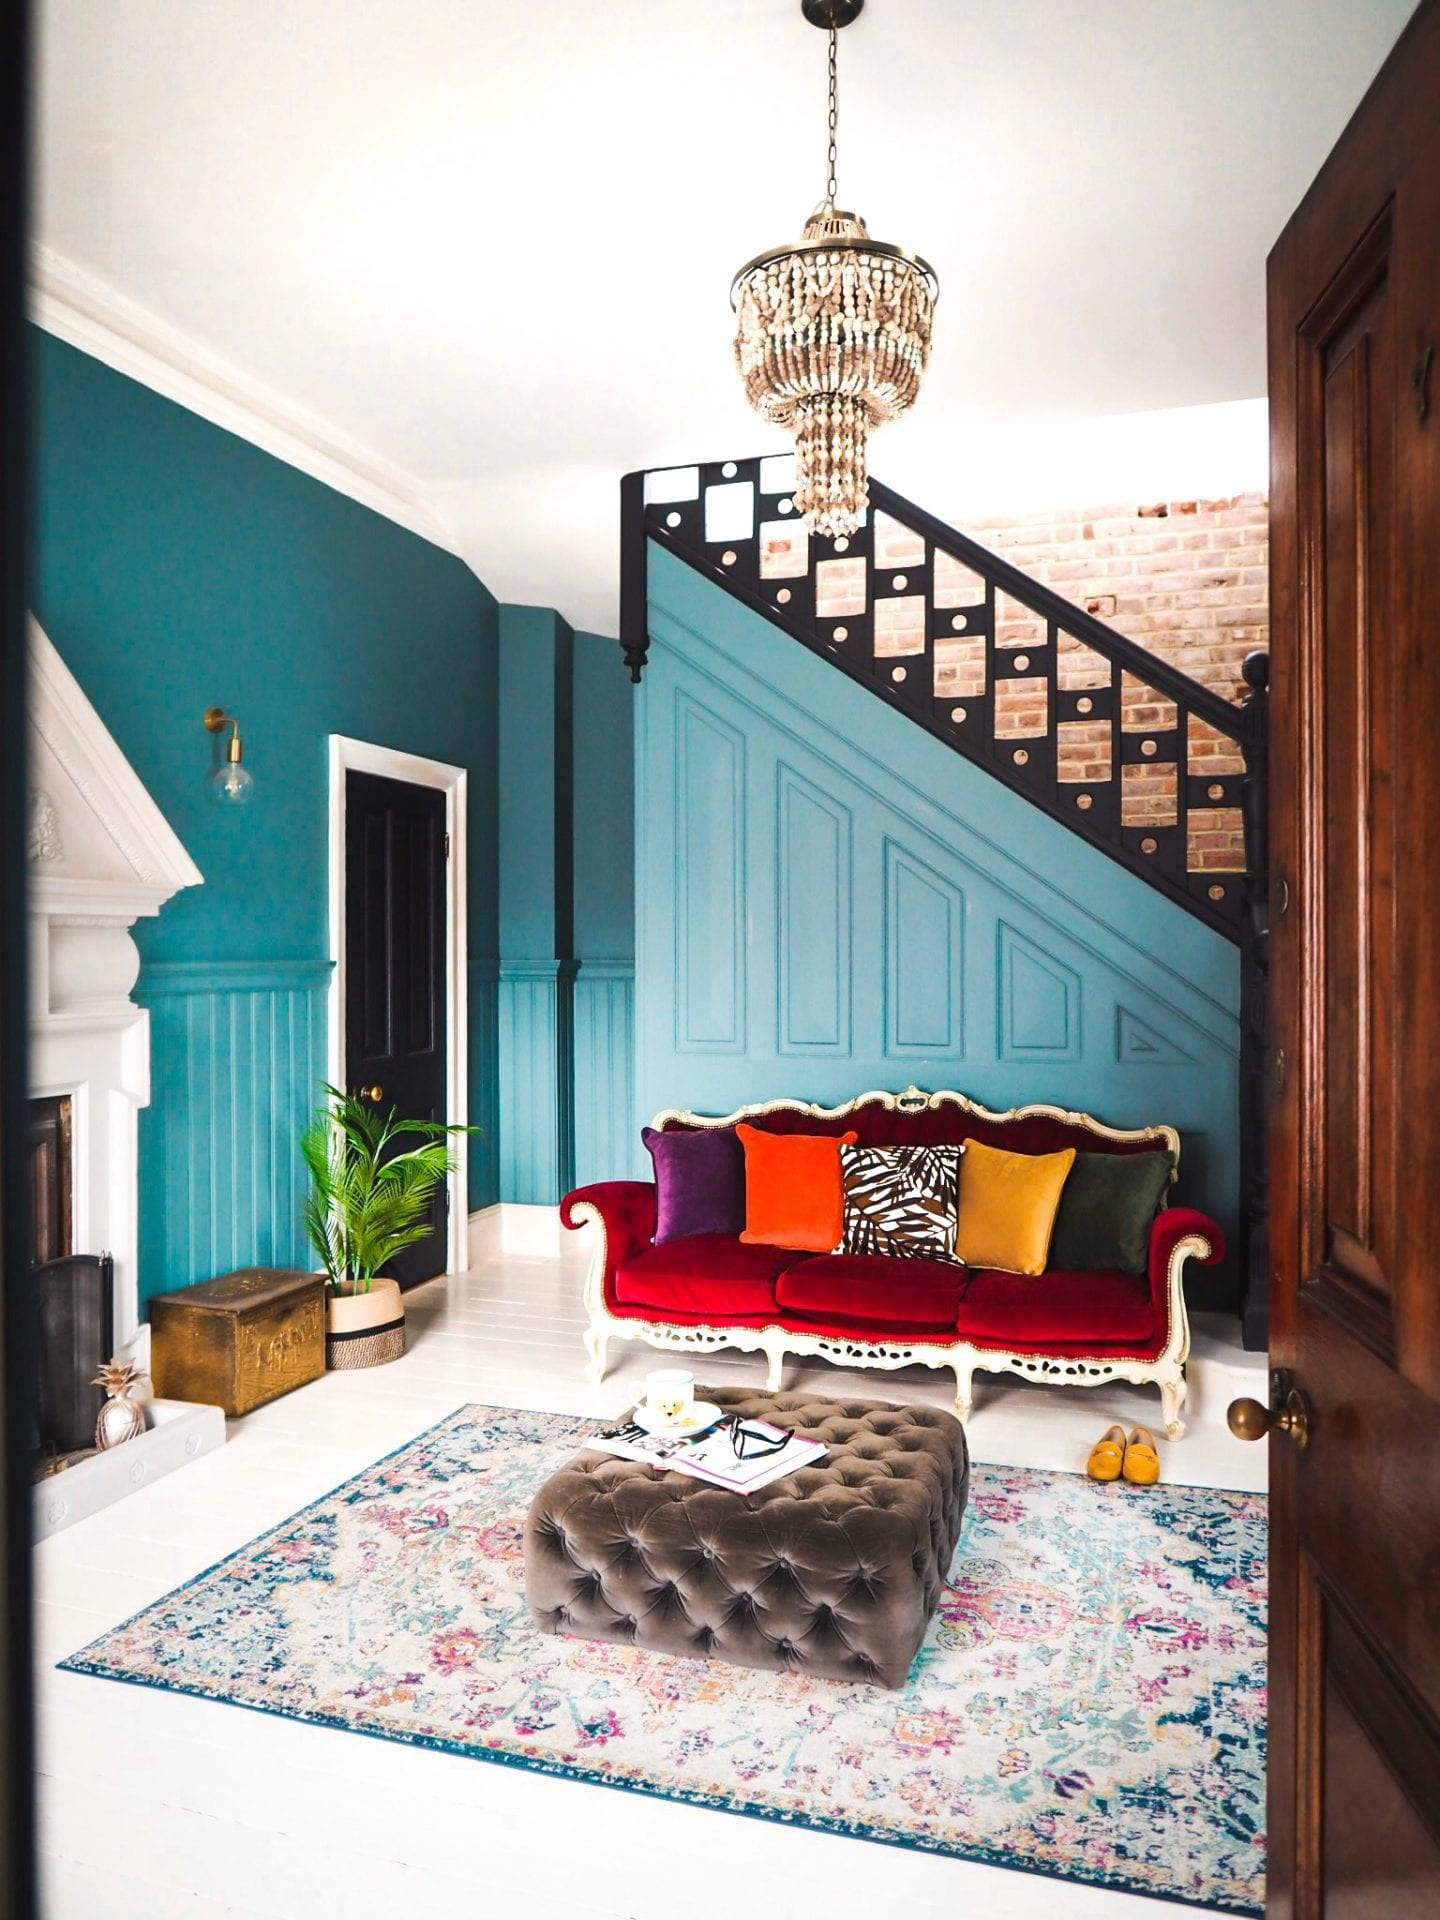 fashion for lunch blog home living room labelsforlunch vintage rococco sofa victorian house